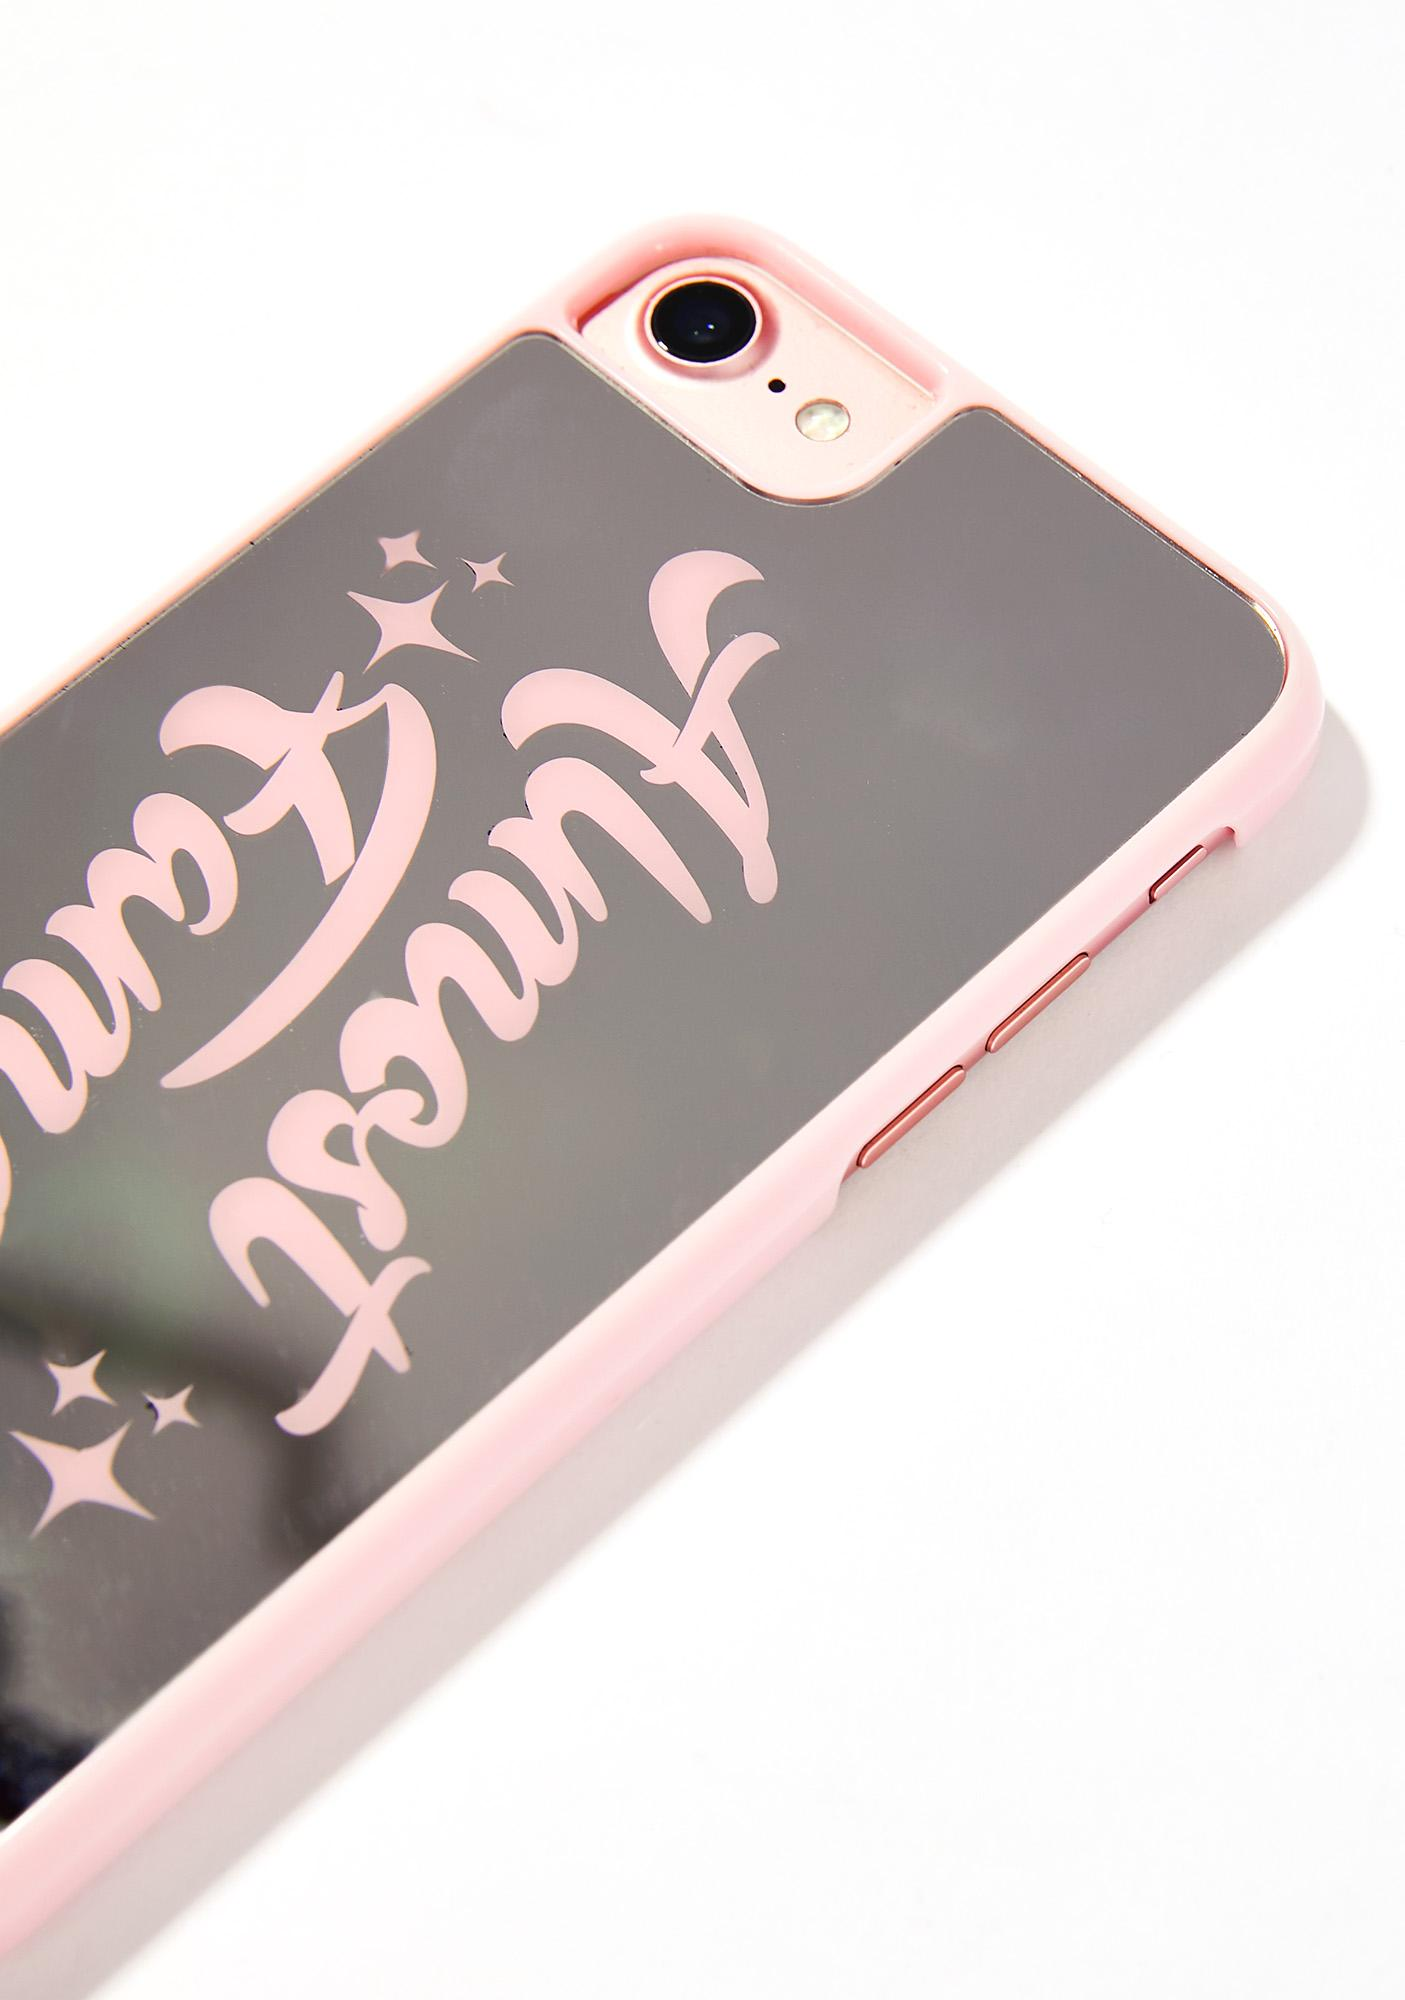 Skinnydip Almost Famous iPhone Case